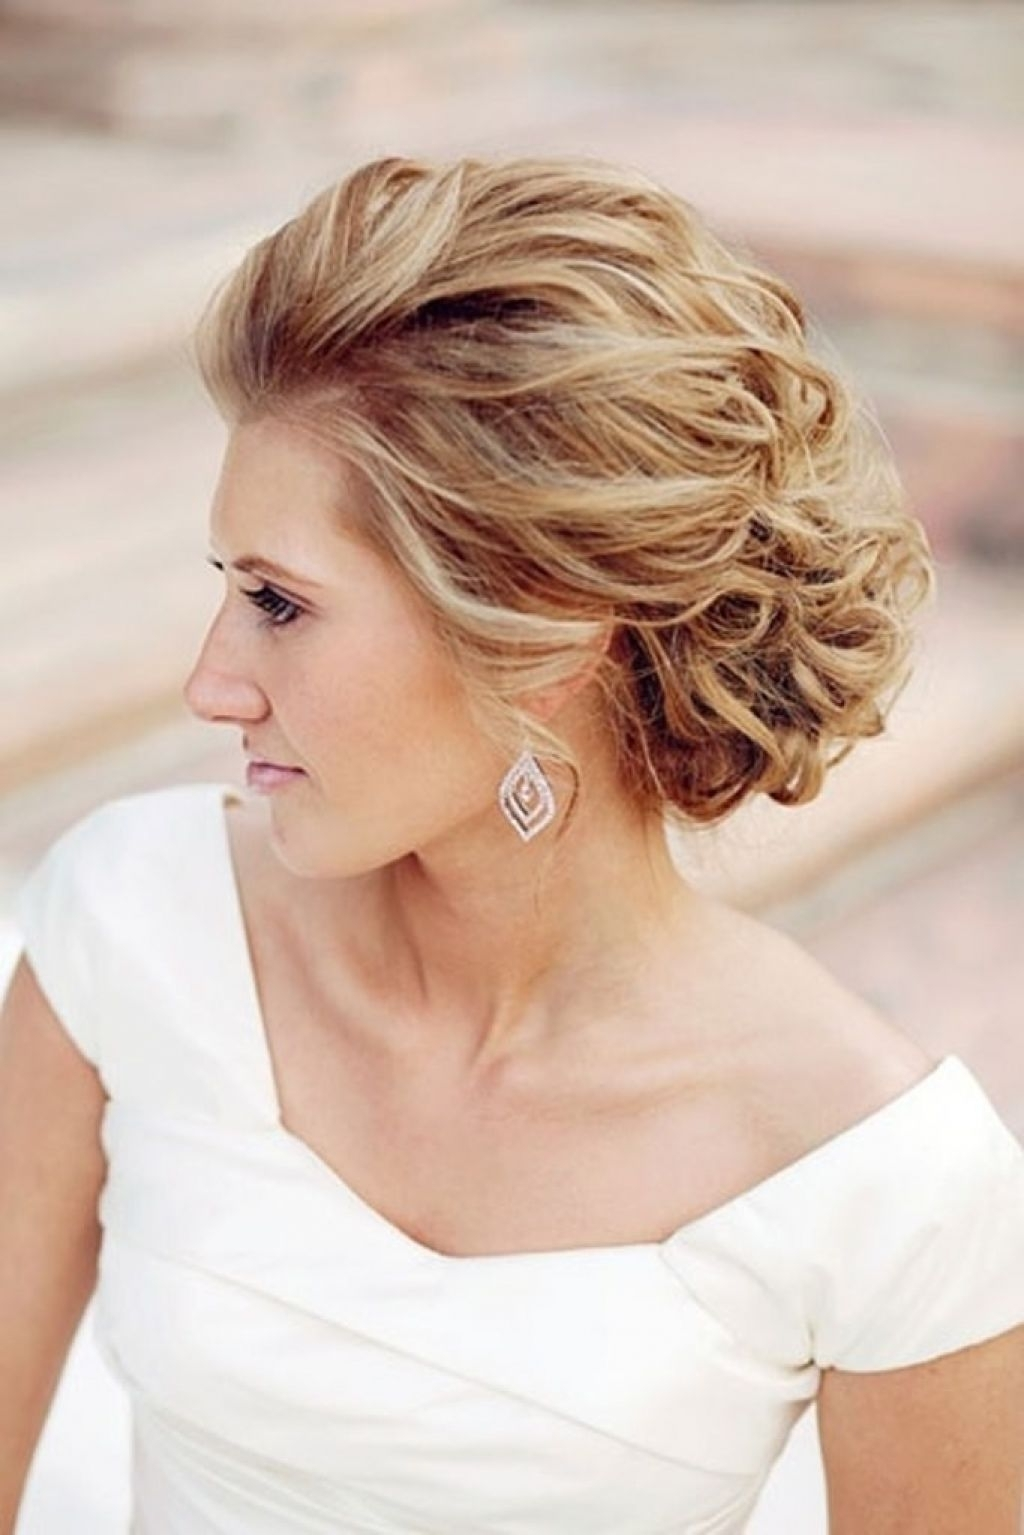 Bridesmaid Hairstyles For Medium Length Hair Wedding Design Ideas For Well Known Bridesmaid Hairstyles For Short To Medium Length Hair (View 9 of 15)